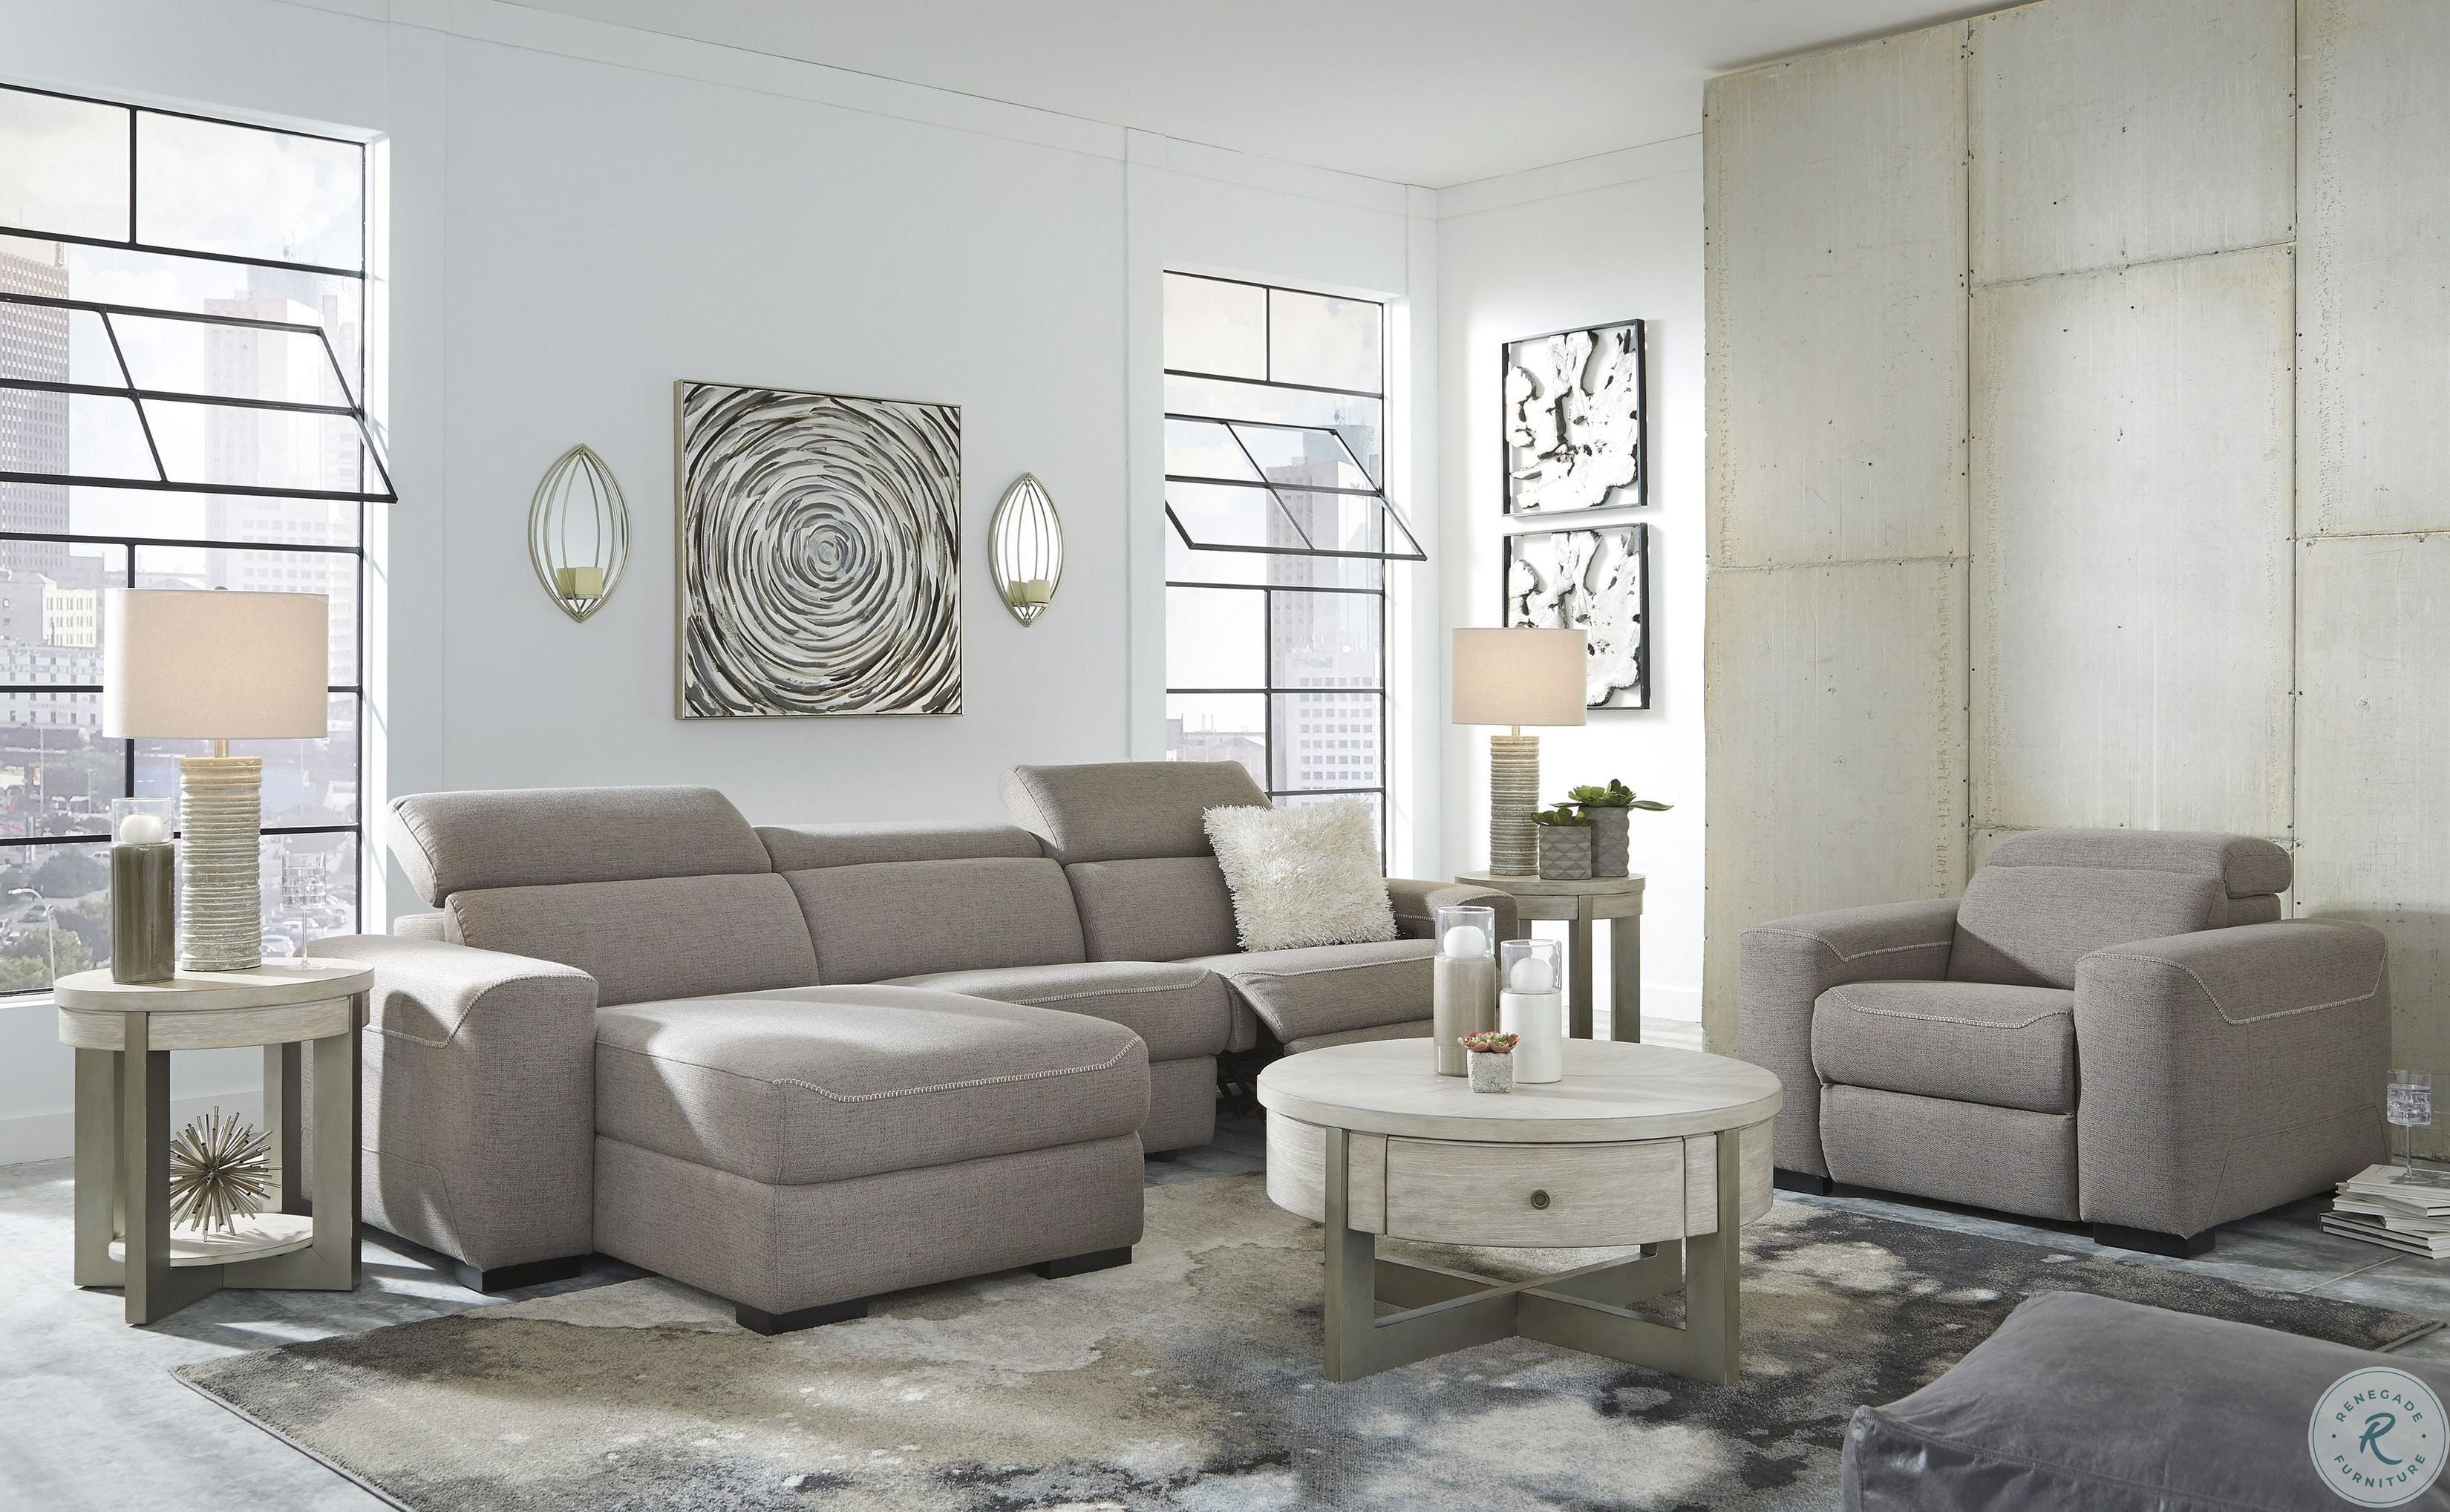 floor decor 44 photos 111 reviews home decor.htm josef gray power reclining laf sectional from furniture of america  josef gray power reclining laf